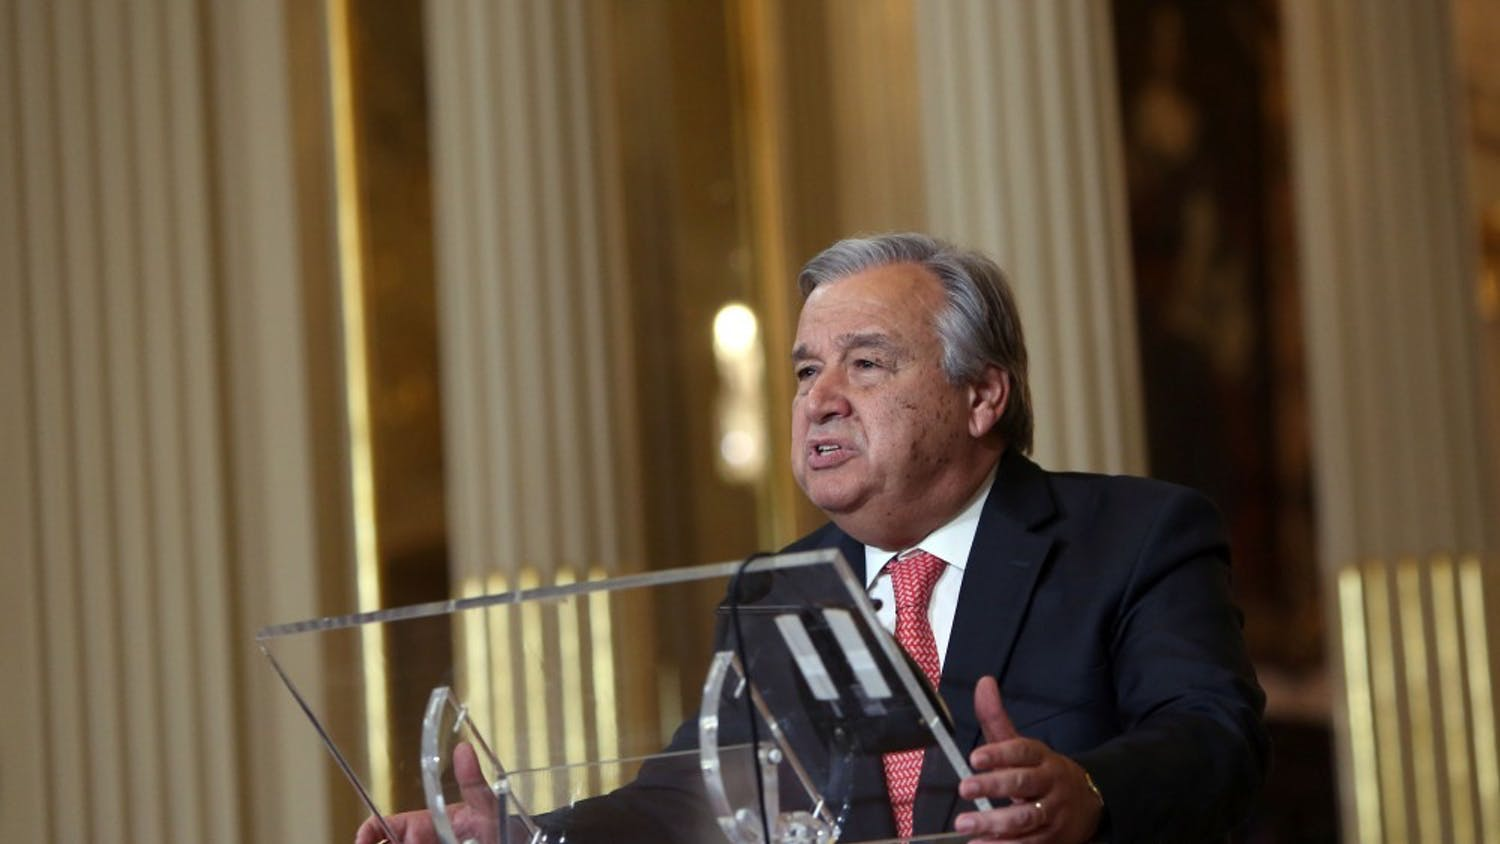 Antonio Guterres speaks to the press on Thursday, on Oct. 6, 2016 at the Ministry of Foreign Affairs in Lisbon, Portugal after his appointment as the next United Nations secretary general. (Pedro Fiuza/Zuma Press/TNS)